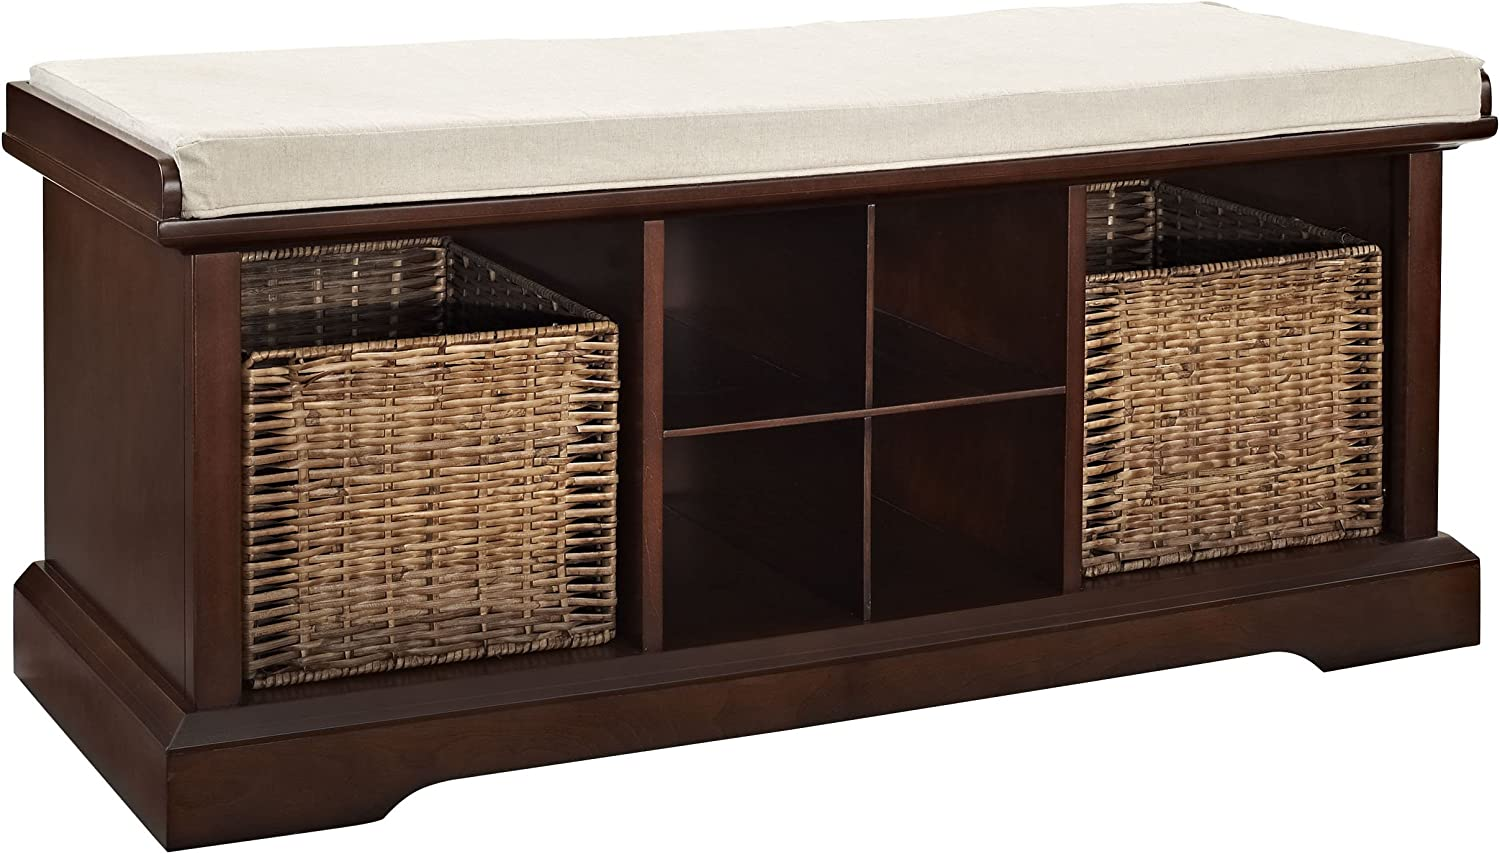 Crosley Furniture Brennan Entryway Storage Bench With Wicker Baskets And Cushion Vintage Mahogany Furniture Decor